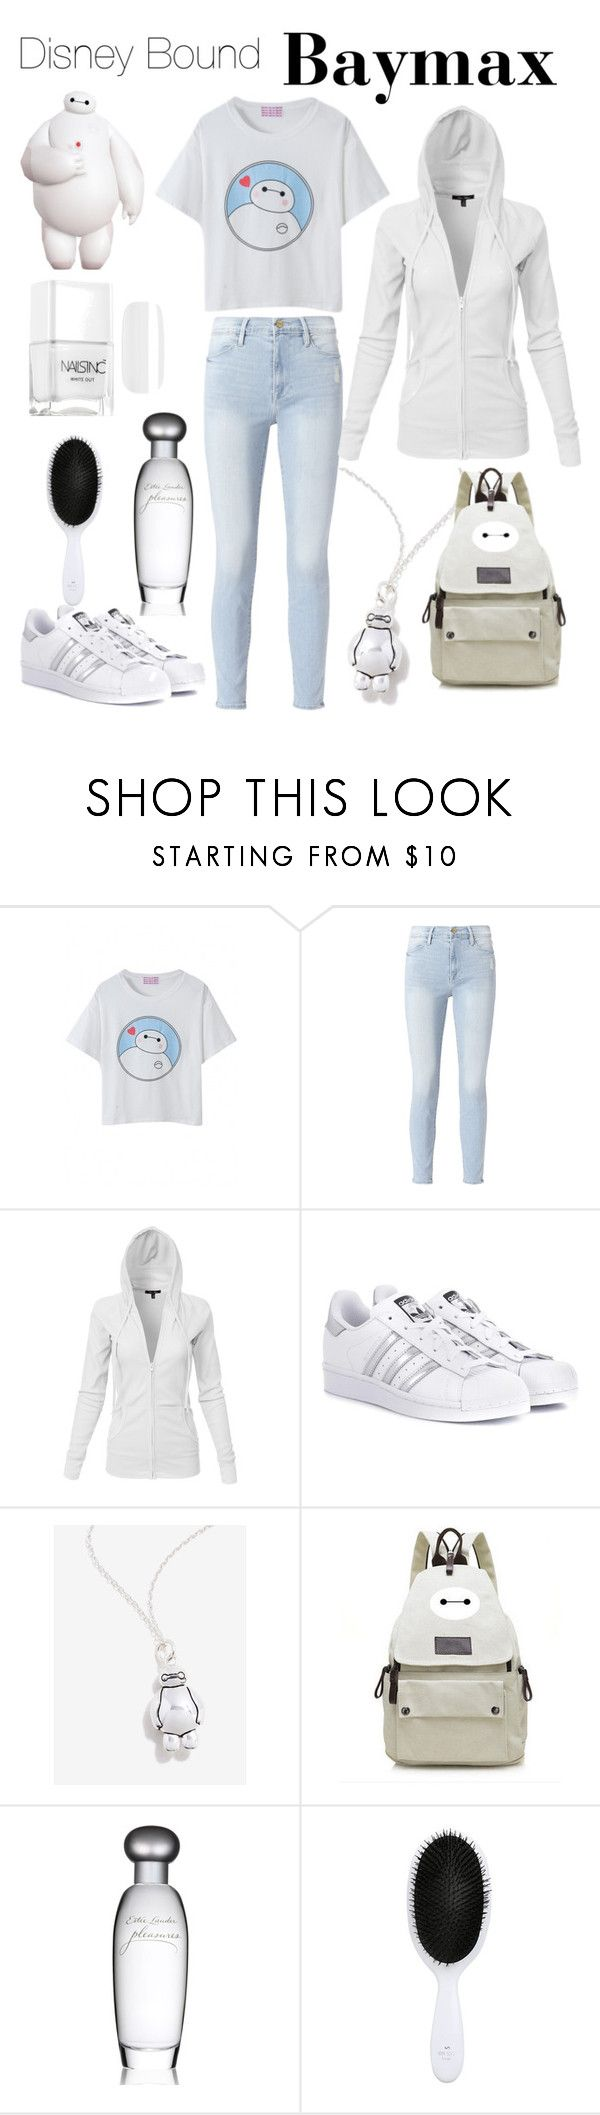 """""""Disney Bound: Baymax"""" by jentlelamb ❤ liked on Polyvore featuring Frame, adidas Originals and Estée Lauder"""